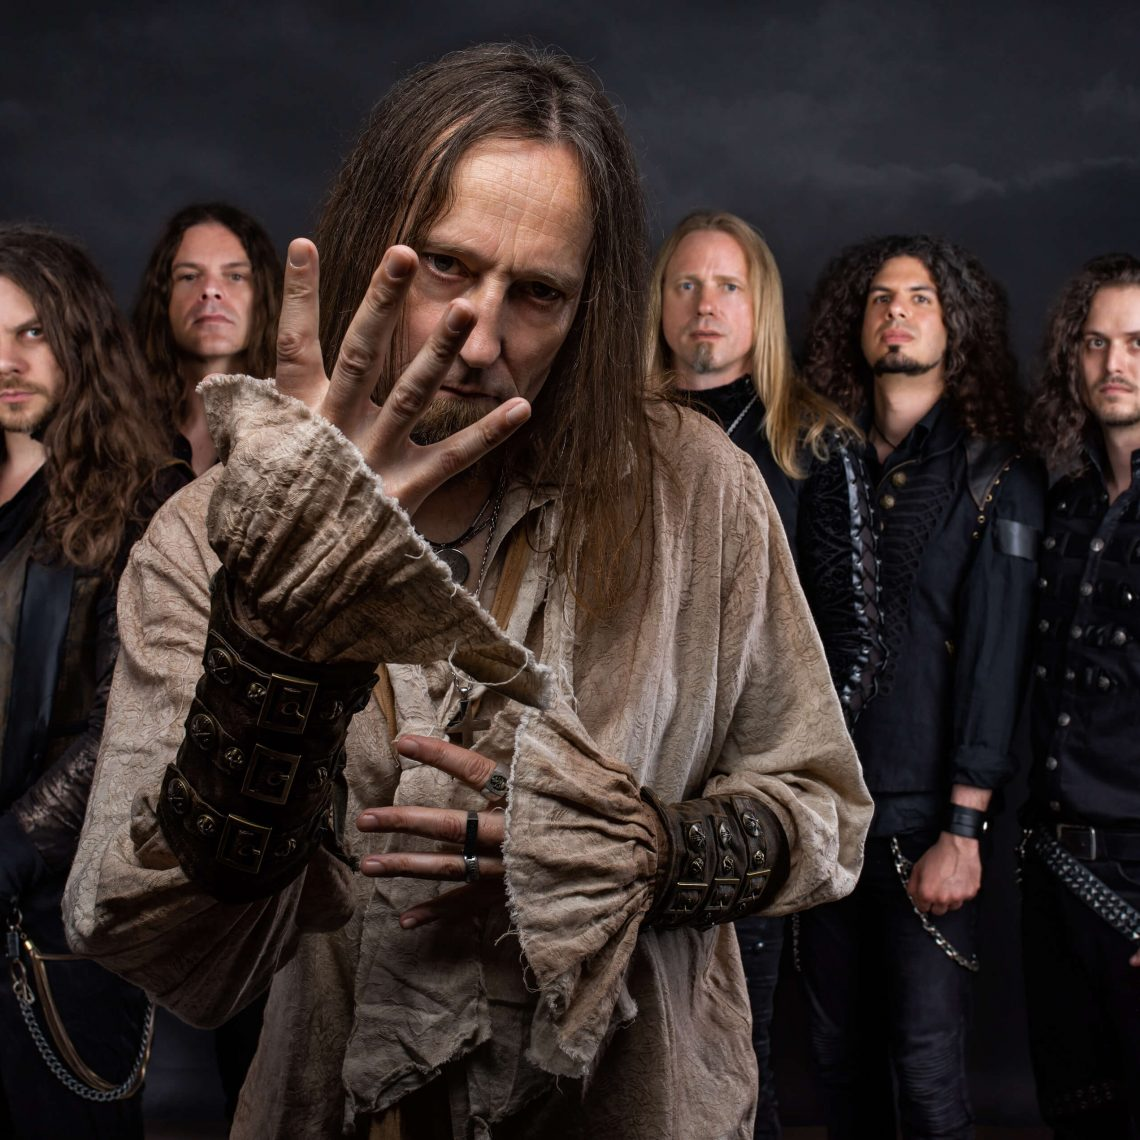 MOB RULES releases new live album in September!